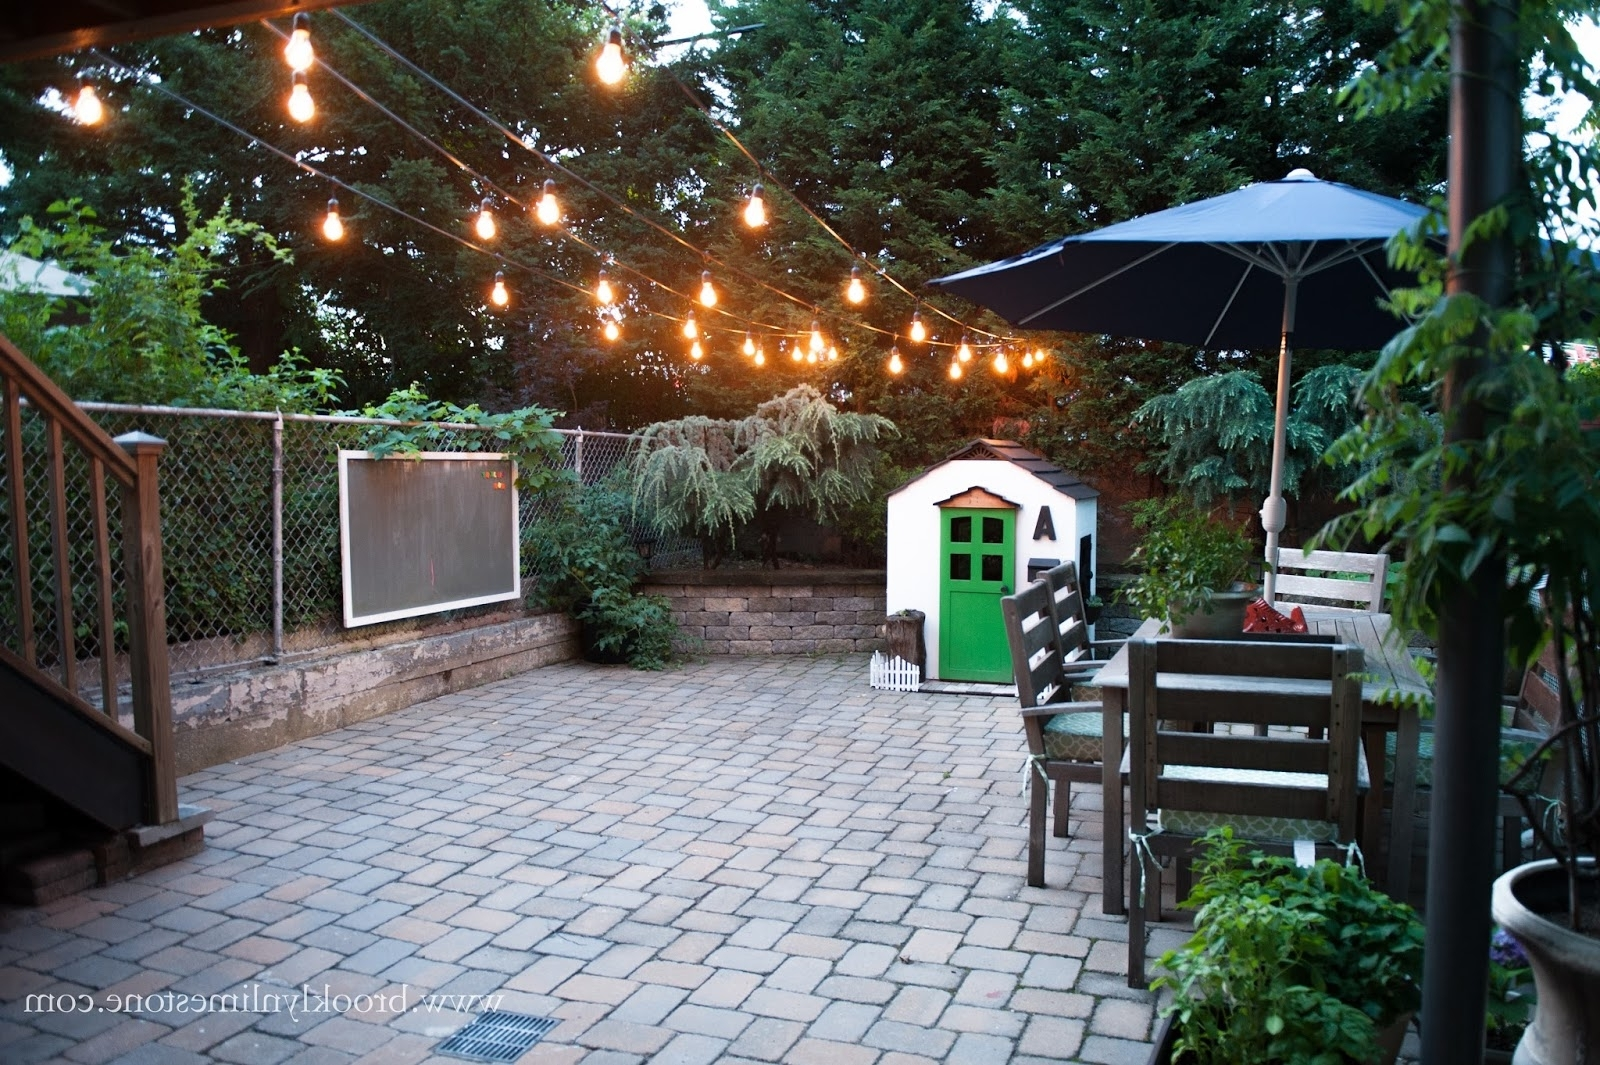 [%Incridible Hanging String Lights Outdoors For Backyardlights%b%%bof With Regard To 2018 Outdoor Patio Hanging String Lights|Outdoor Patio Hanging String Lights With Most Recent Incridible Hanging String Lights Outdoors For Backyardlights%b%%bof|Well Known Outdoor Patio Hanging String Lights Intended For Incridible Hanging String Lights Outdoors For Backyardlights%b%%bof|Preferred Incridible Hanging String Lights Outdoors For Backyardlights%b%%bof With Regard To Outdoor Patio Hanging String Lights%] (View 1 of 20)